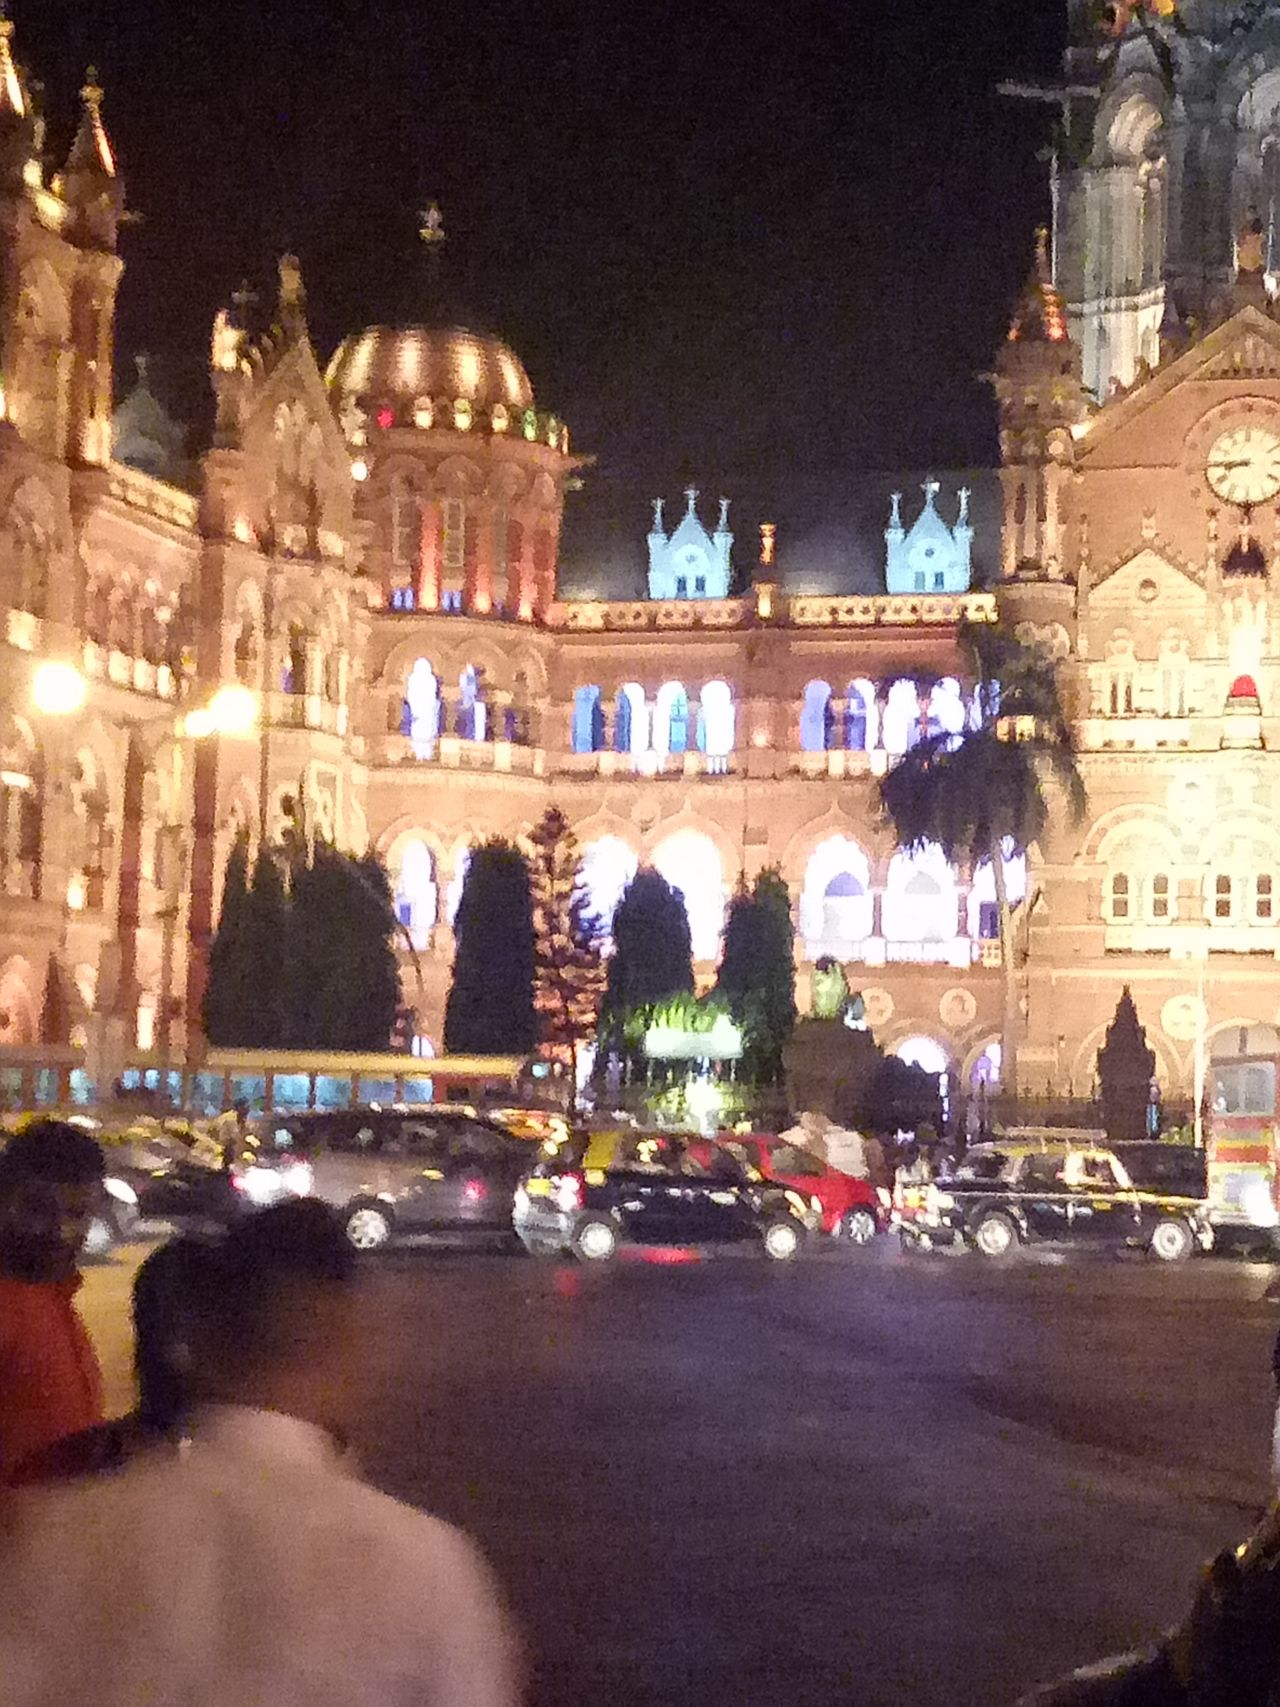 Proud and Happiest to be Mumbai'kar. Also my native UNESCO World Heritage Site Unescoworldheritage Mobile Phone Photography Mobile_photographer Mobilephotography Cstmumbai CST Mumbaikar Mumbai_in_clicks Mumbai MumbaiDiaries City Nightlife Cityscape Sculpture Outdoors Building Exterior Travel Destinations Architecture Built Structure Crowd Night Illuminated